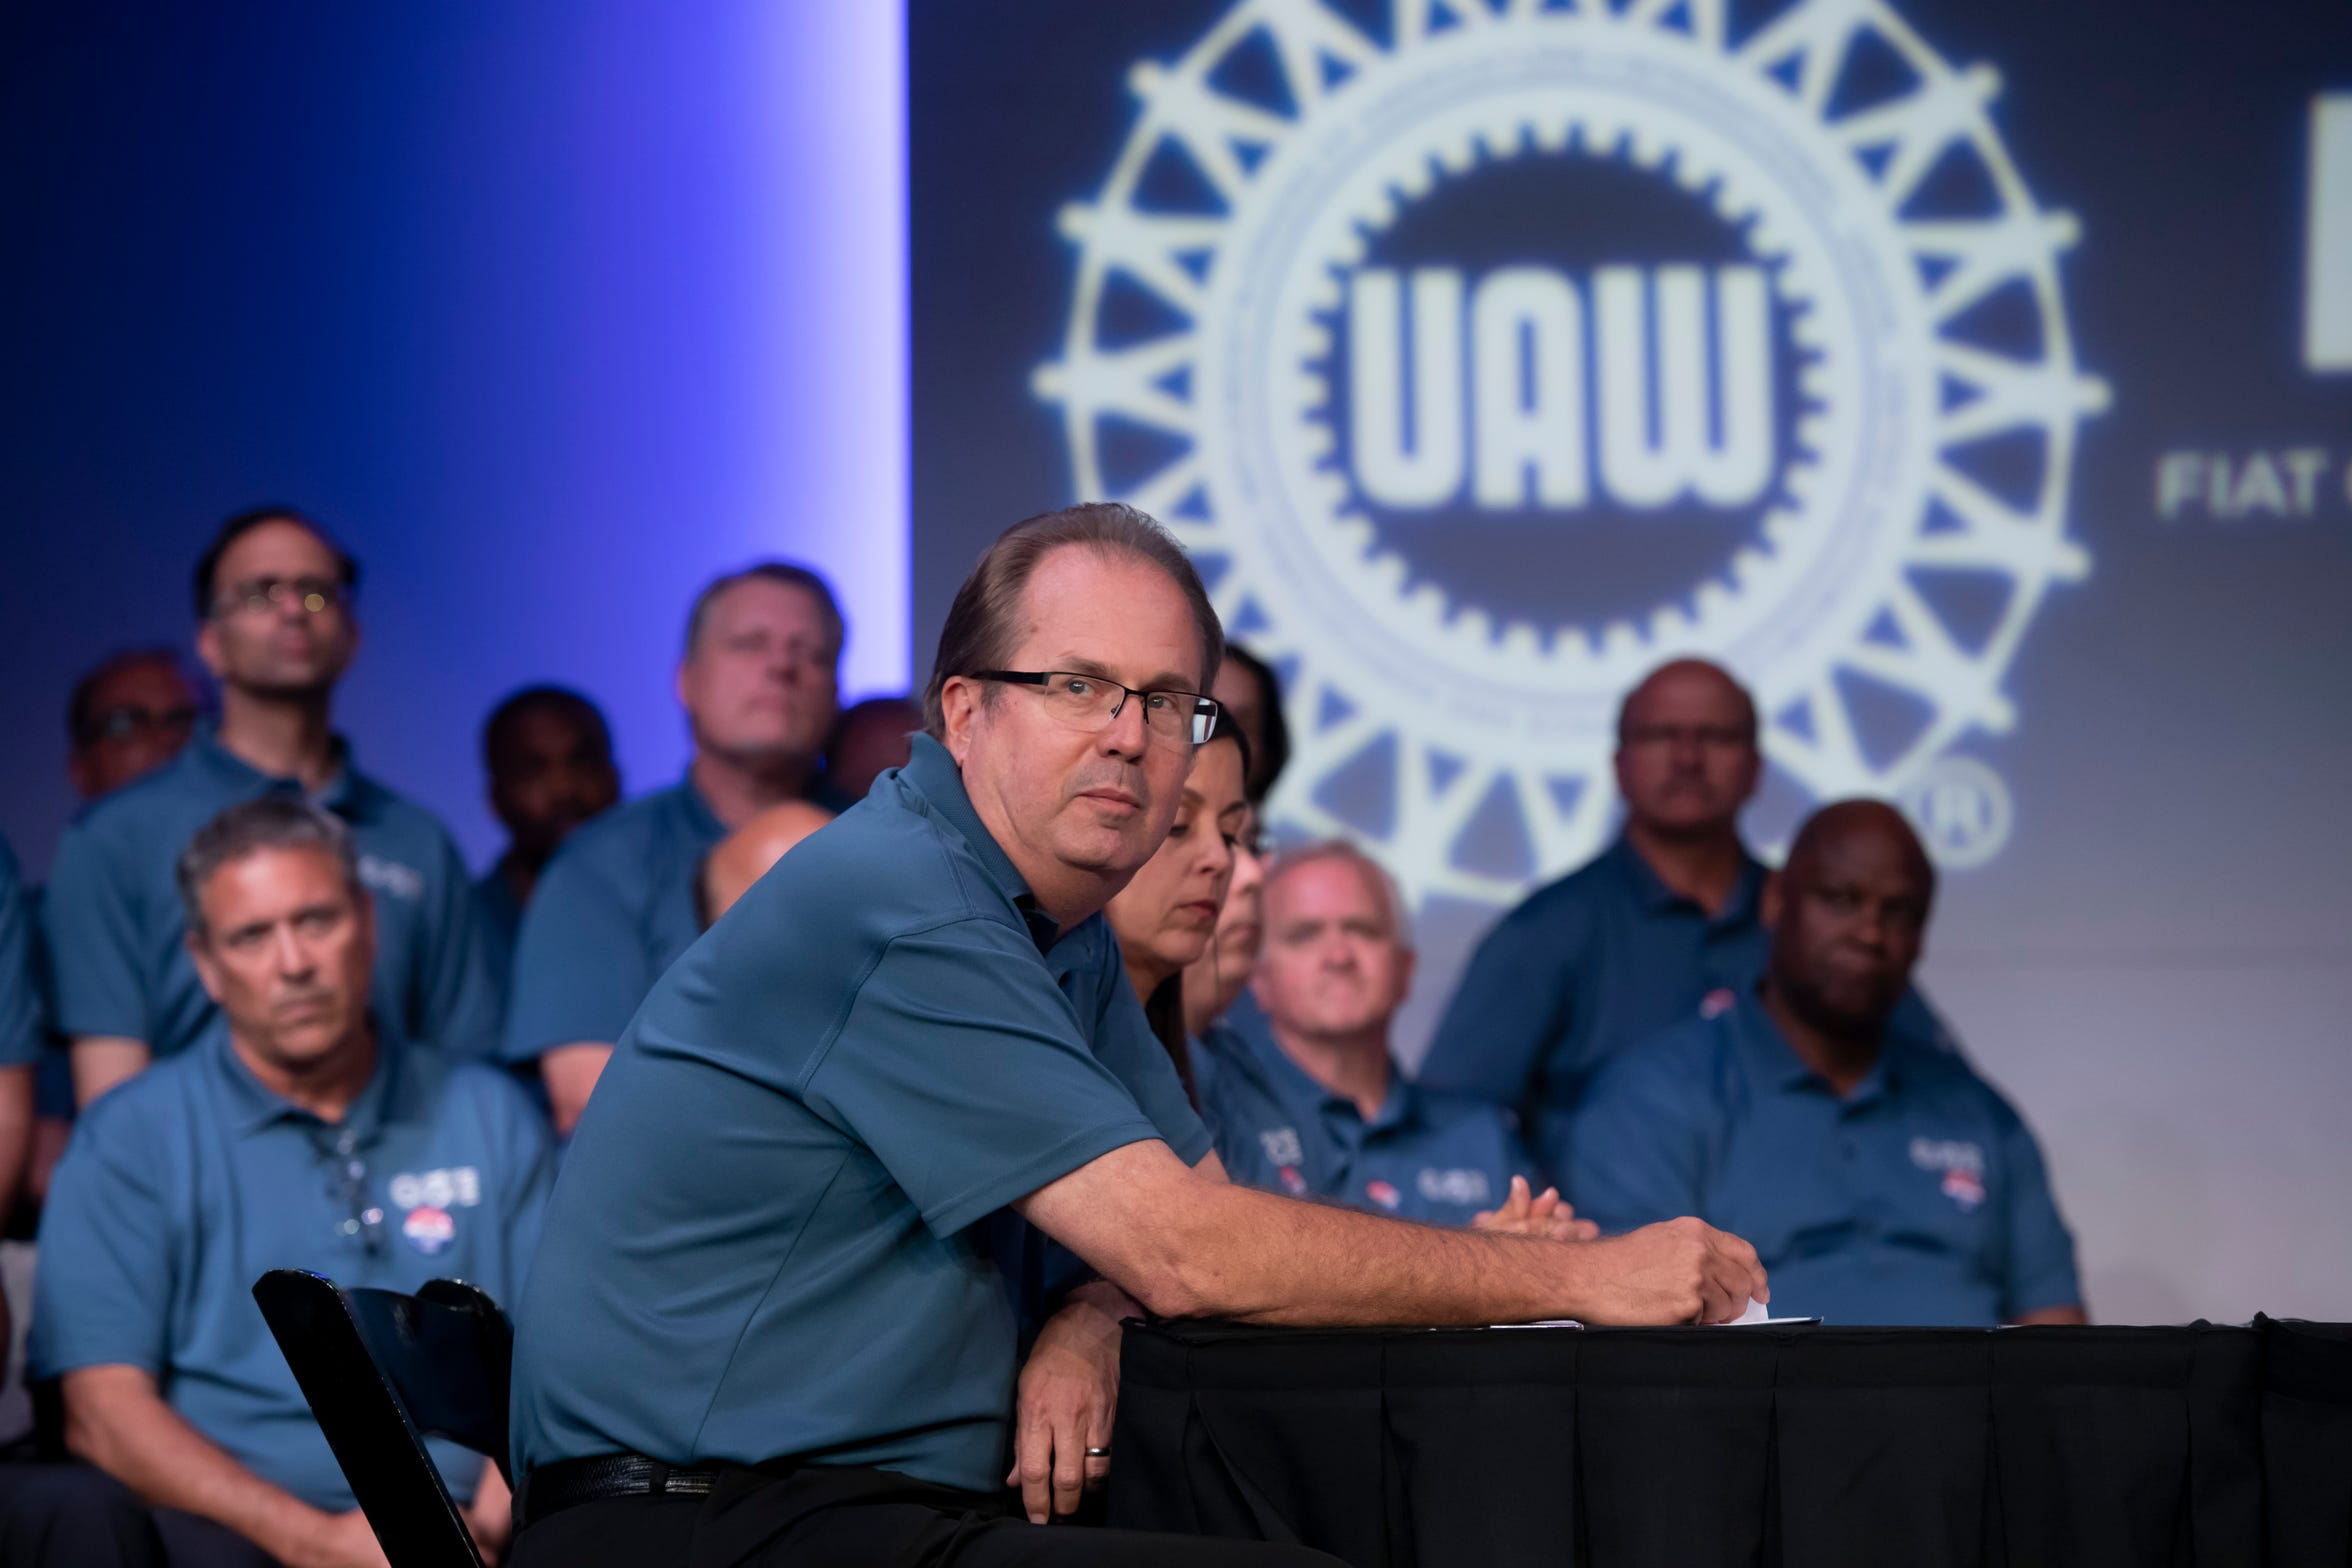 United Auto Workers President Gary Jones speaks before the ceremonial handshake to mark the beginning of negotiations between the United Auto Workers and Fiat Chrysler Automobiles at FCA's North America headquarters in Auburn Hills, July 16, 2019. Jones resigned from the UAW November 29 after he and other UAW officials were accused of embezzlingmore than $1.5million in member dues that were spent on private villas, liquor, golf and cigars.